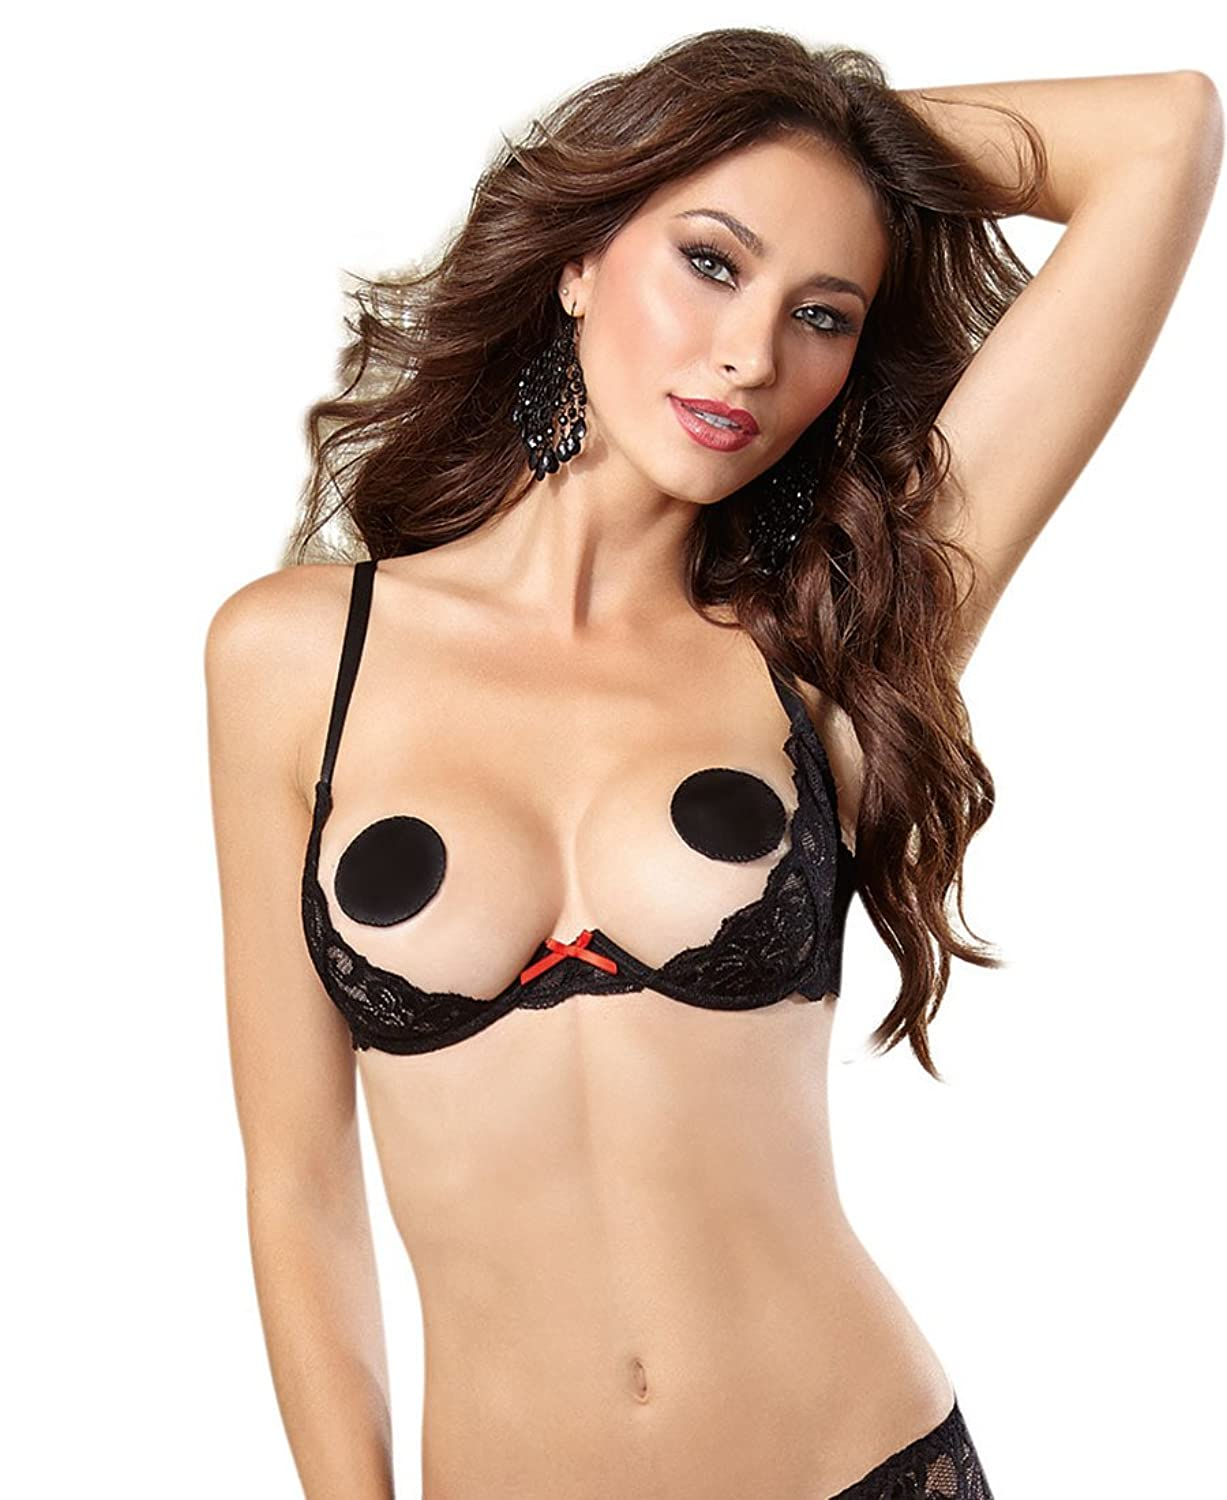 82dc0176673d69 Amazon.com: Dreamgirl 9763 Women's Underwire Lace Open Cup Shelf Bra:  Clothing